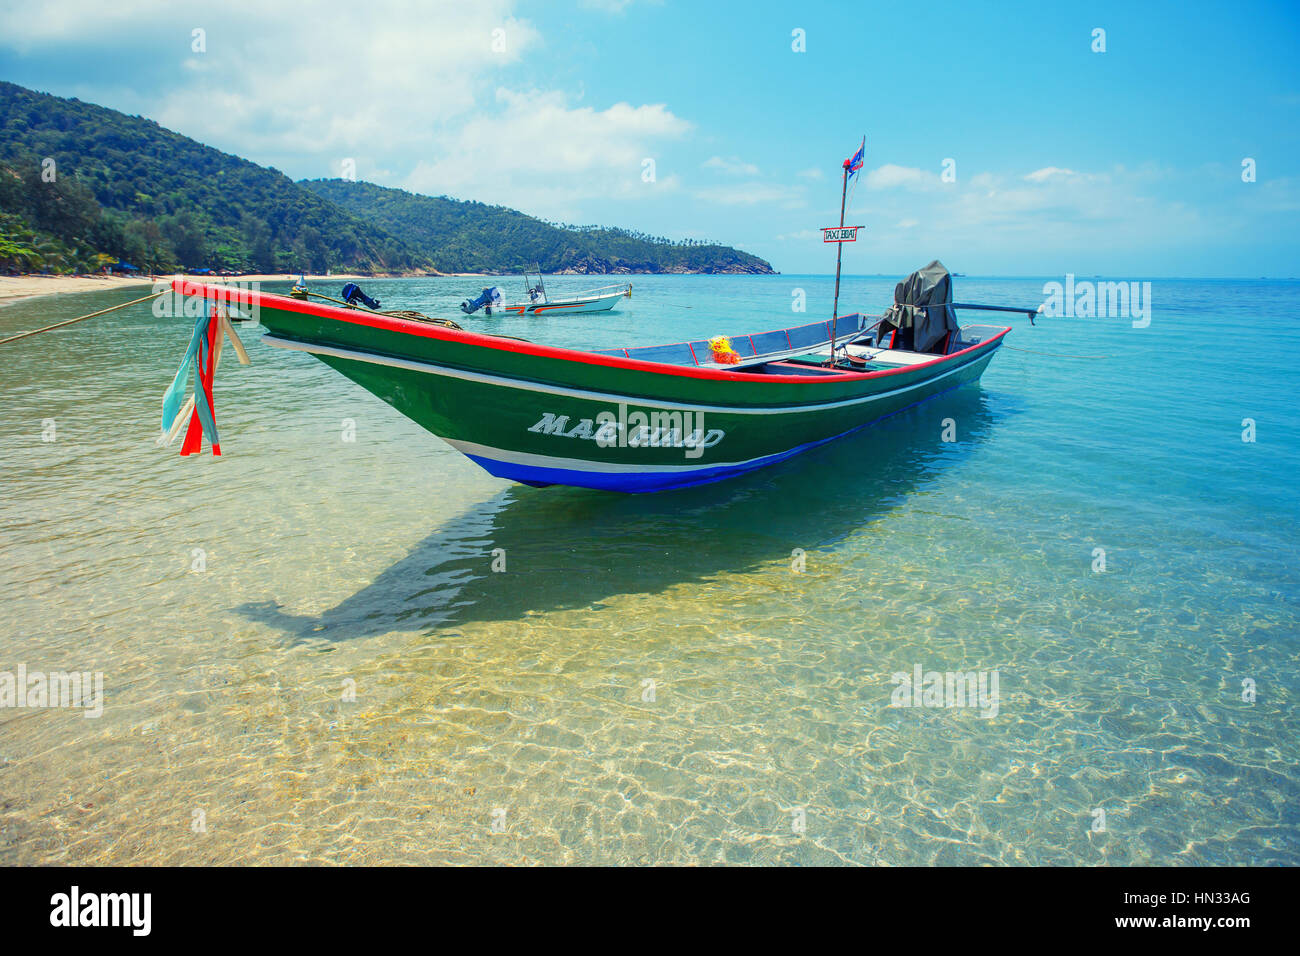 Koh Ma beach with boat at Koh Phangan Island, Thailand - Stock Image